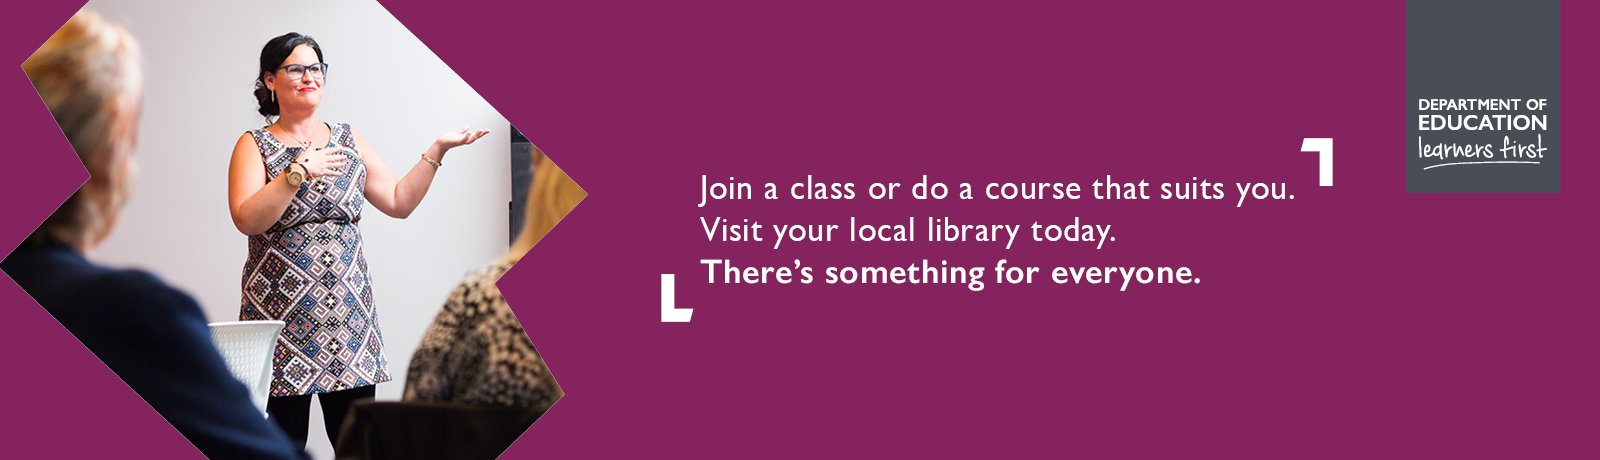 Join a class or do a course that suits you. Visit your local library today. There's something for everyone.